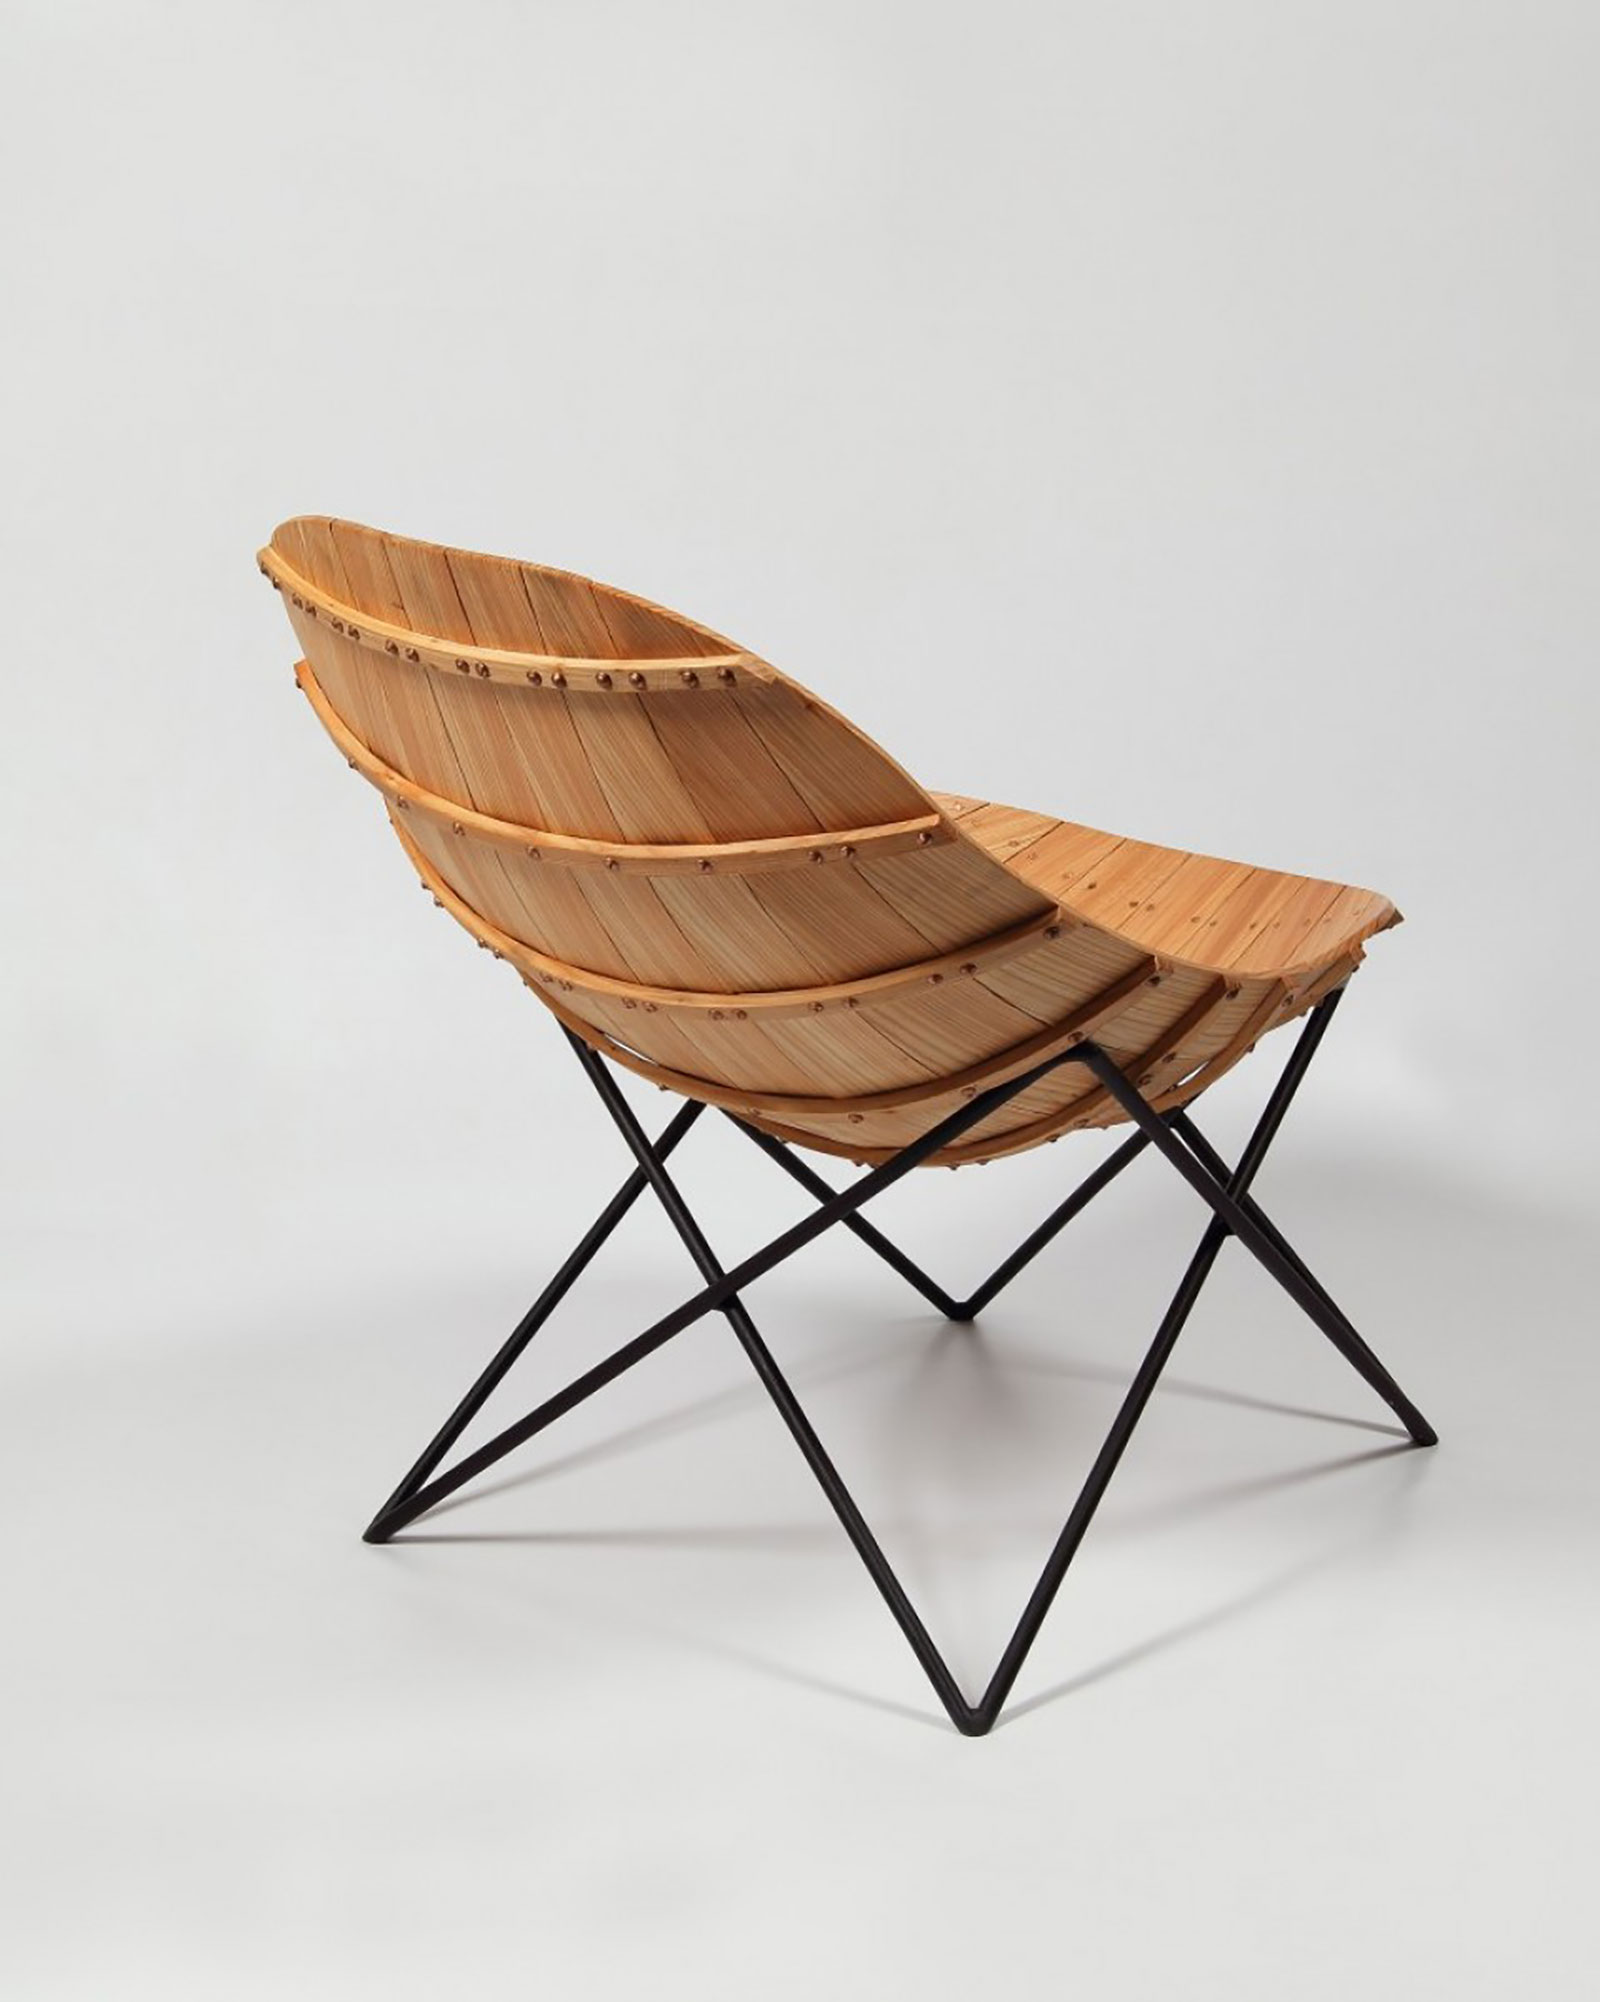 Carvel Chair by Andrew Clancy & Mathew O'Malley for Déanta